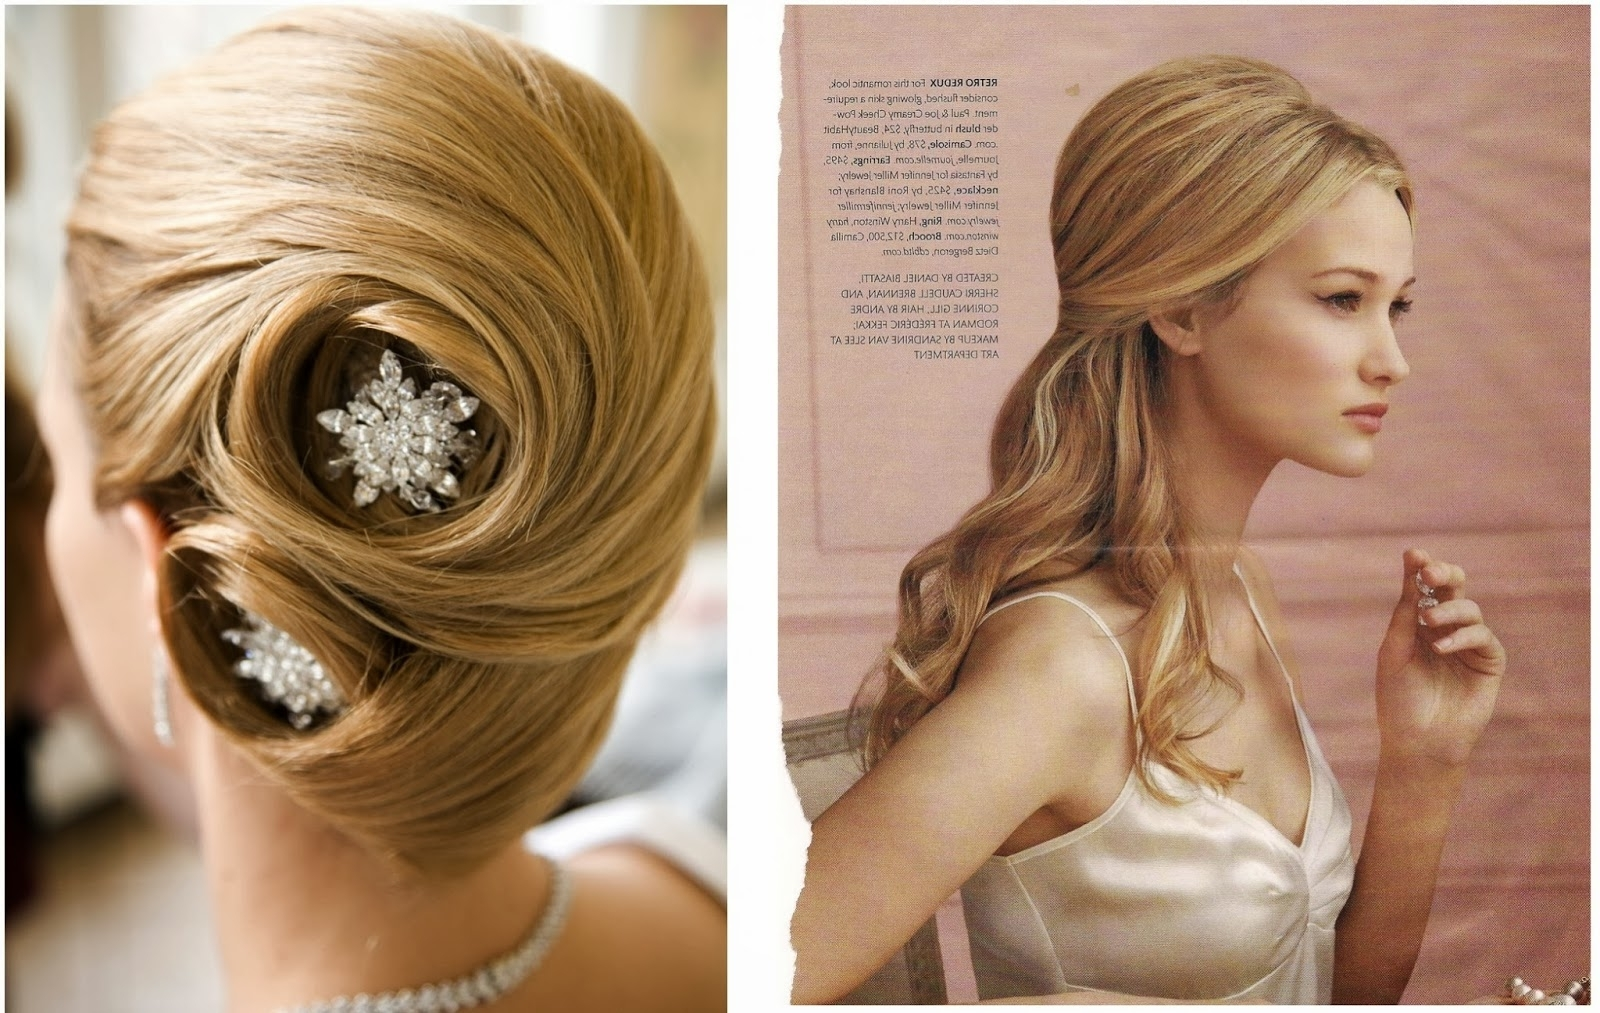 Popular Wedding Hairstyles For Long Thin Hair Throughout Braided Hairstyles For Long Hair Wedding (View 9 of 15)